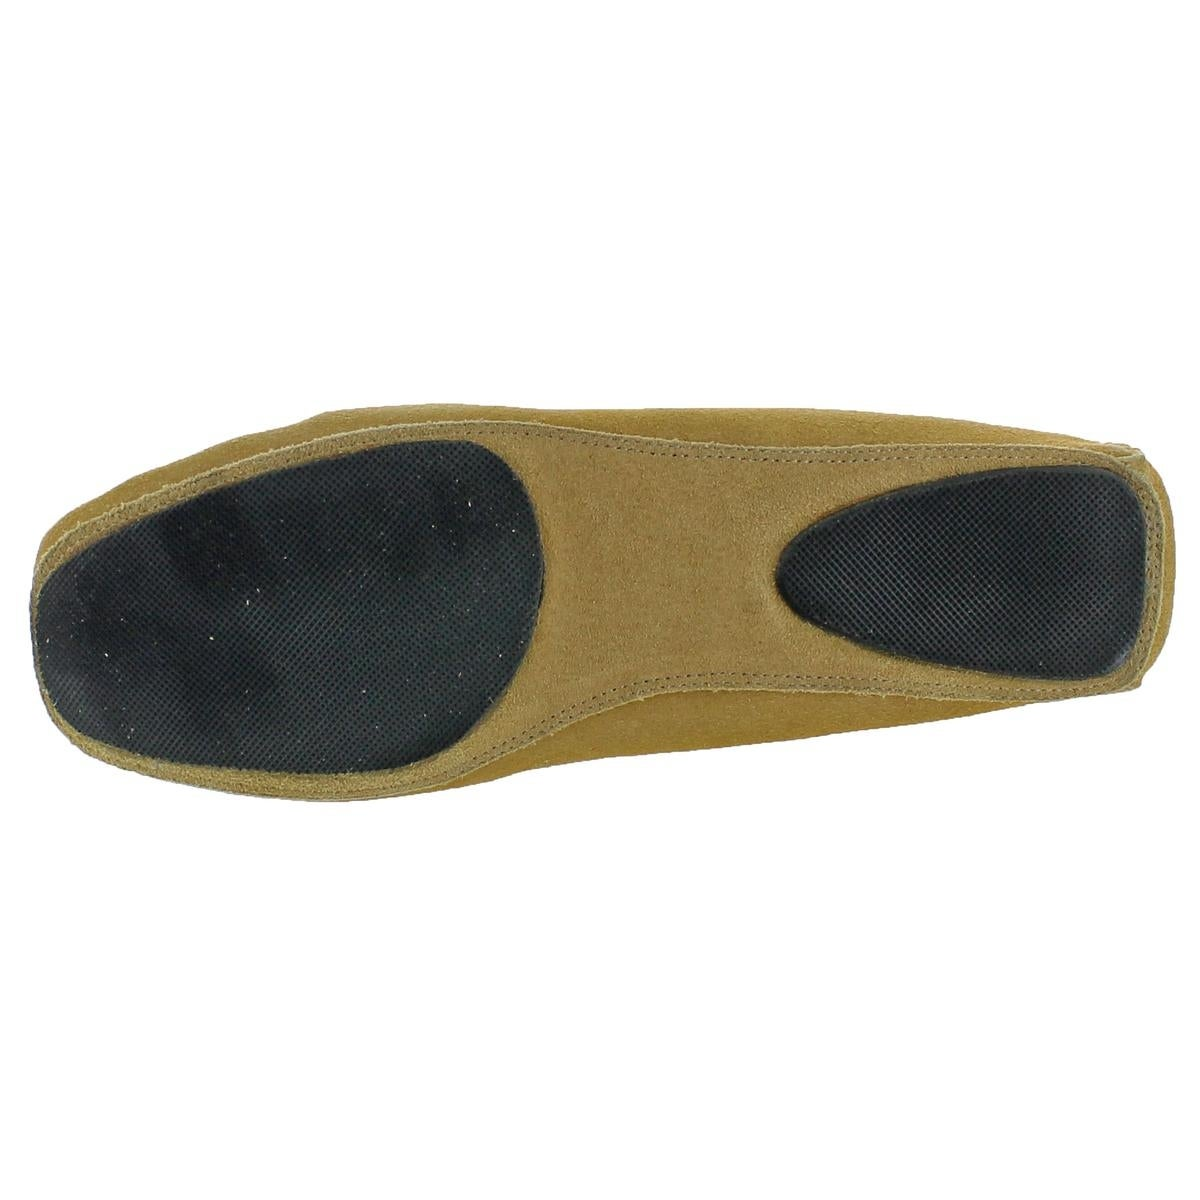 58178e185eb Shop Cole Haan Womens Loafer Slippers Moccasin Lined - 12 medium (b ...